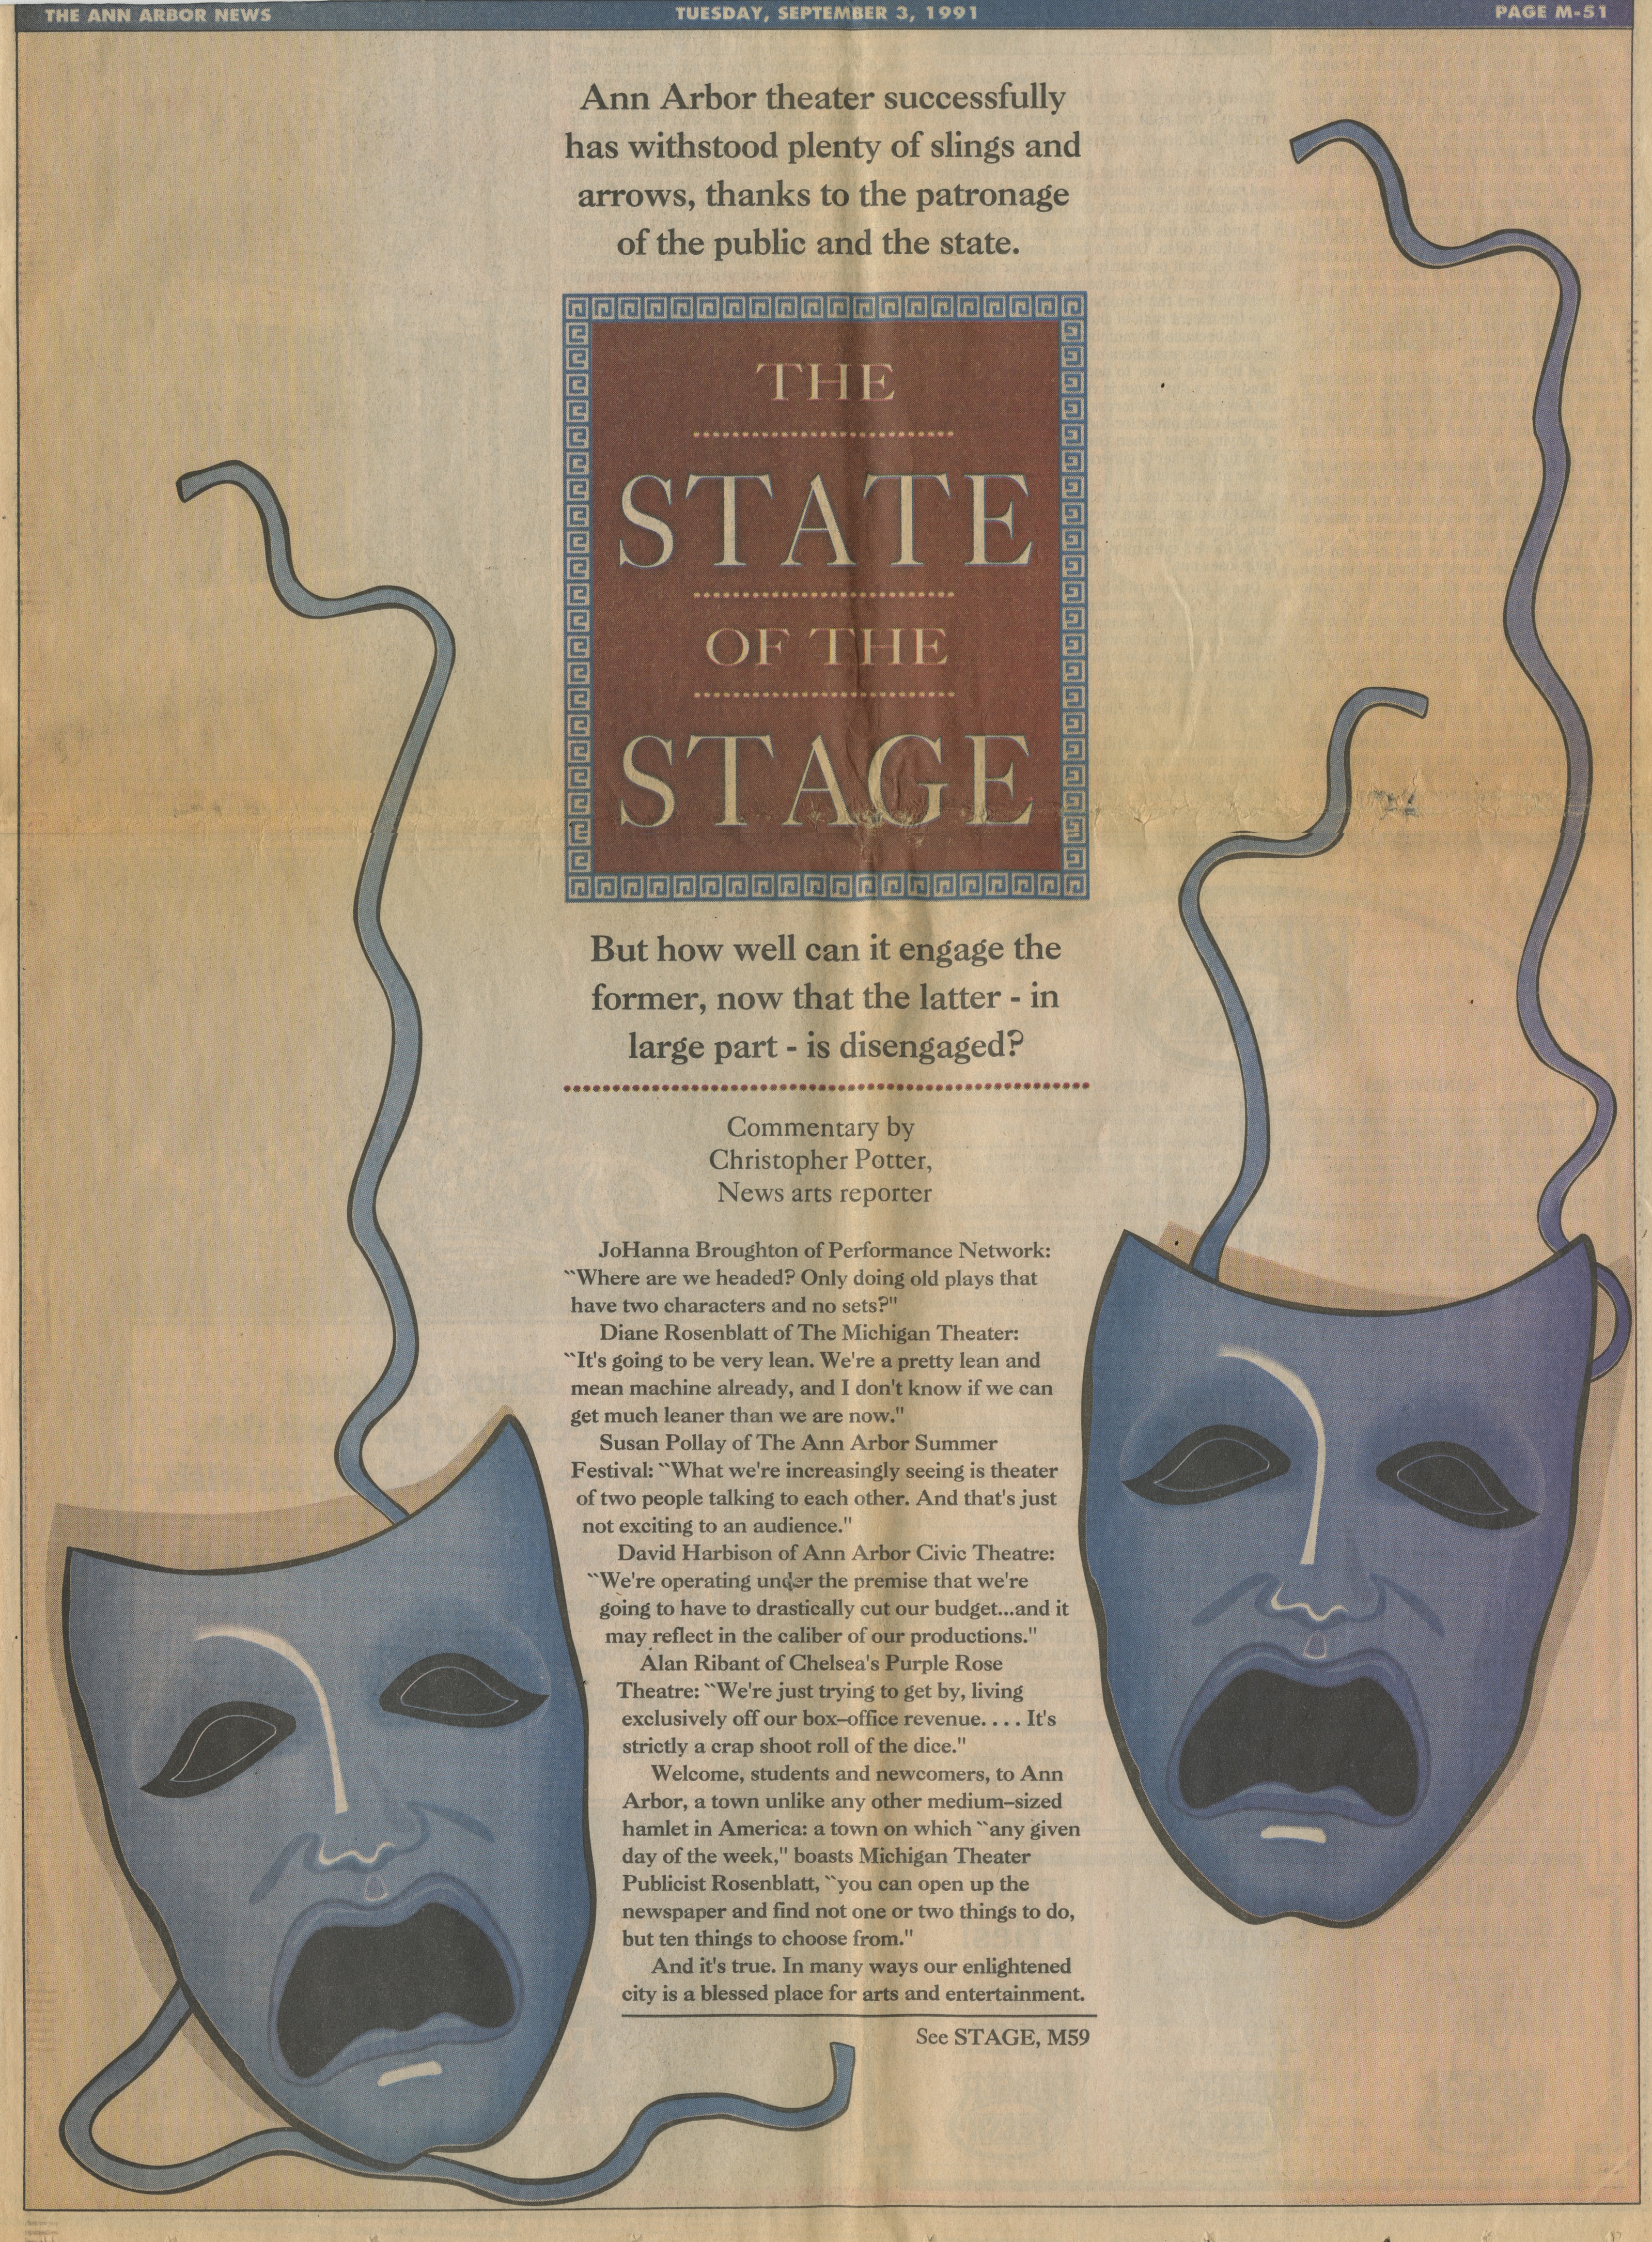 The State Of The Stage image